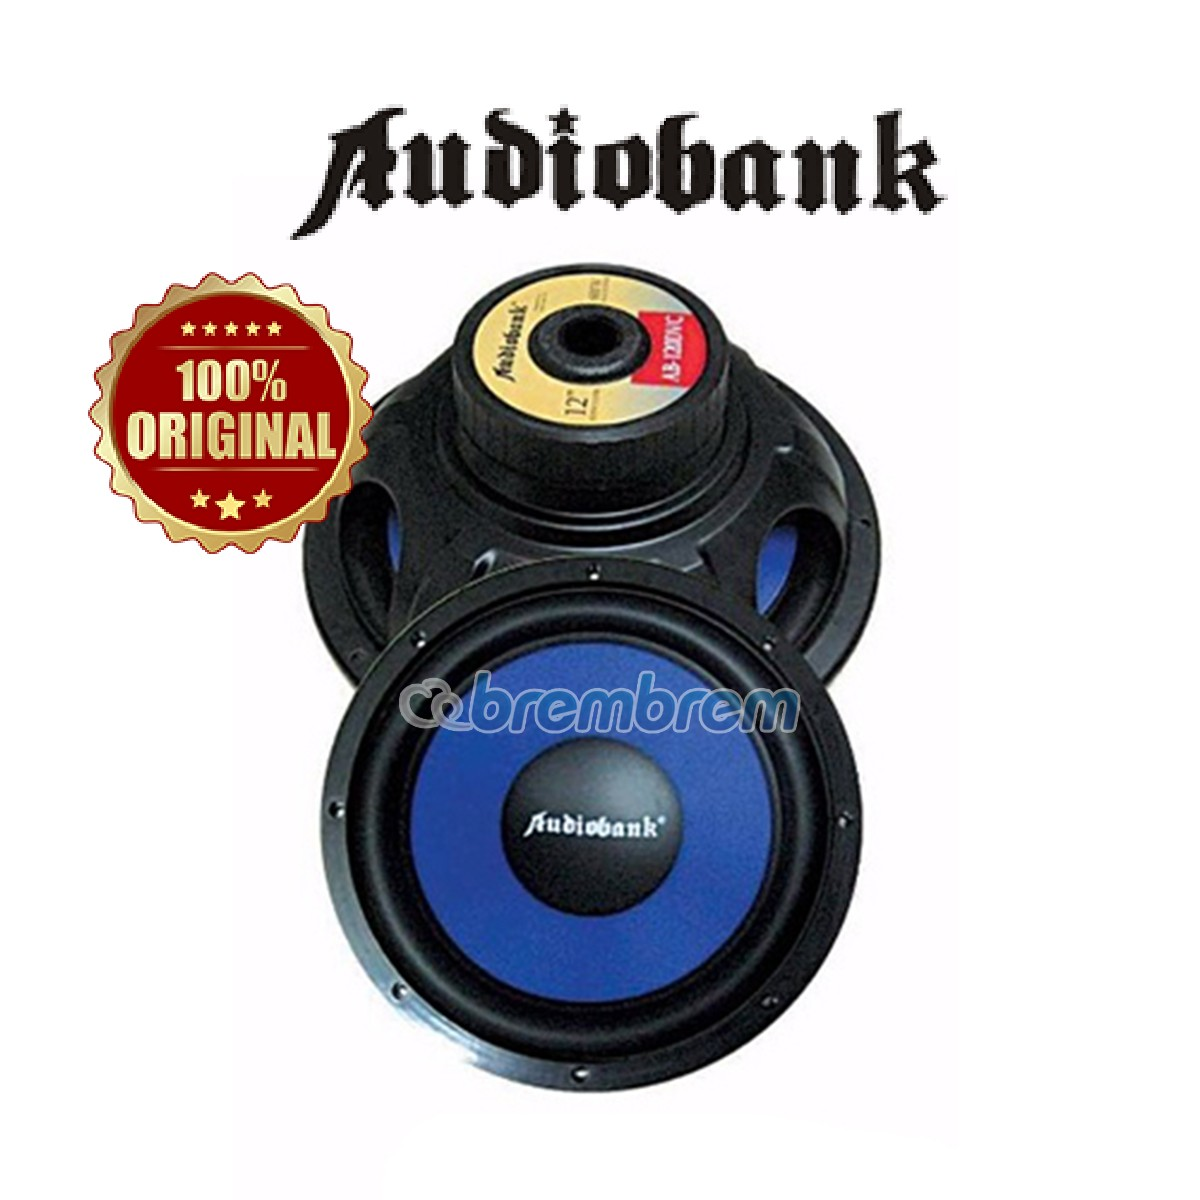 AUDIOBANK AB-120DVC - SUBWOOFER PASIF (PREORDER)